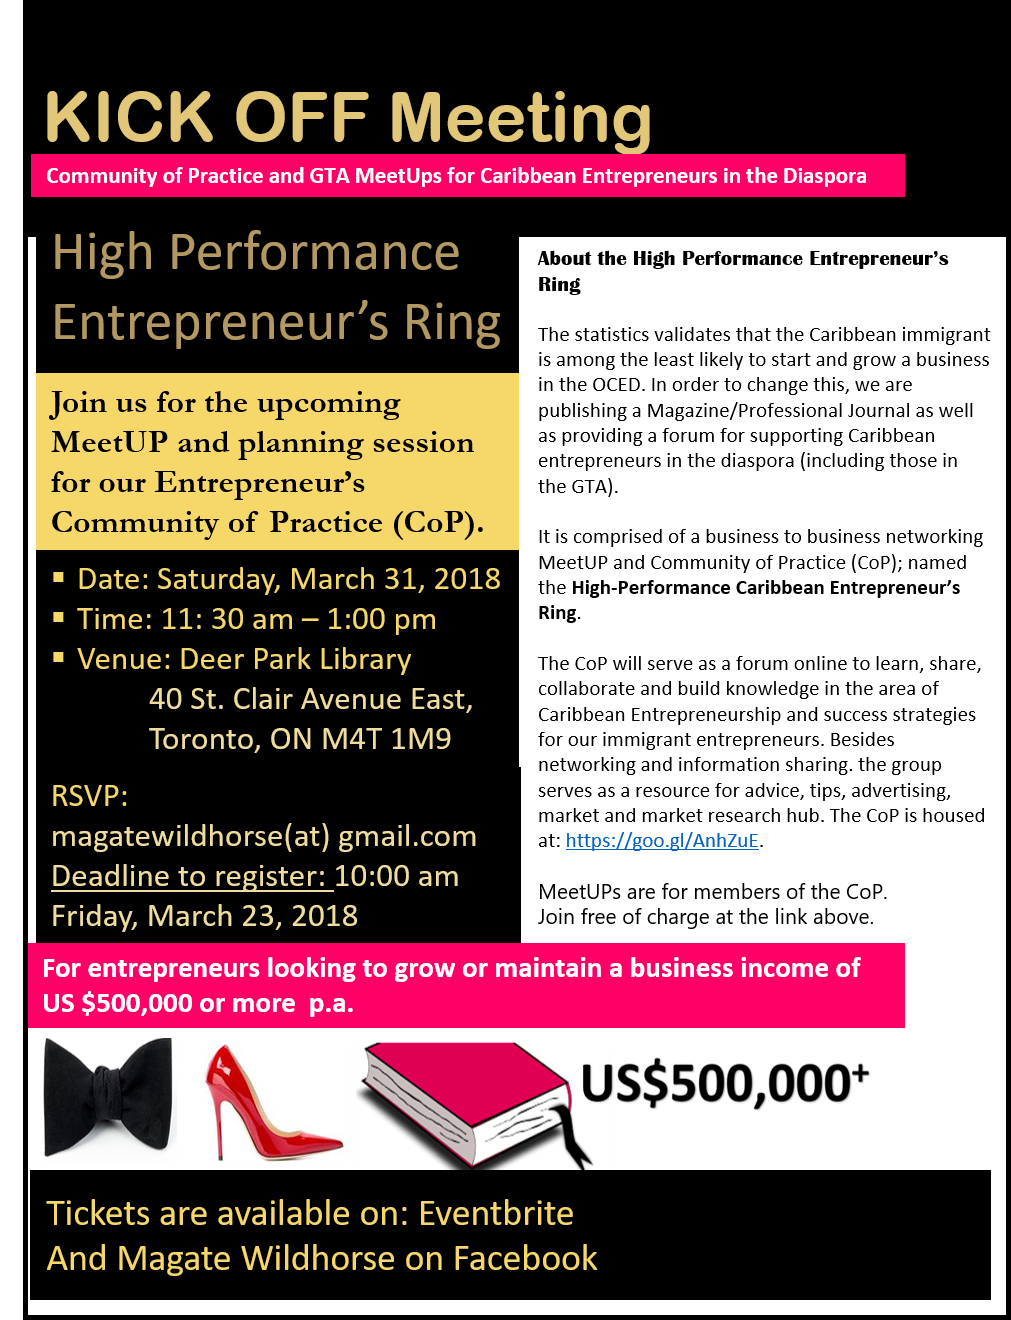 meetup, b2b networking, caribbean entrepreneur's community of practice, high performance entrepreneur's ring, GTA entrepreneur's meetup, caribbean, diaspora